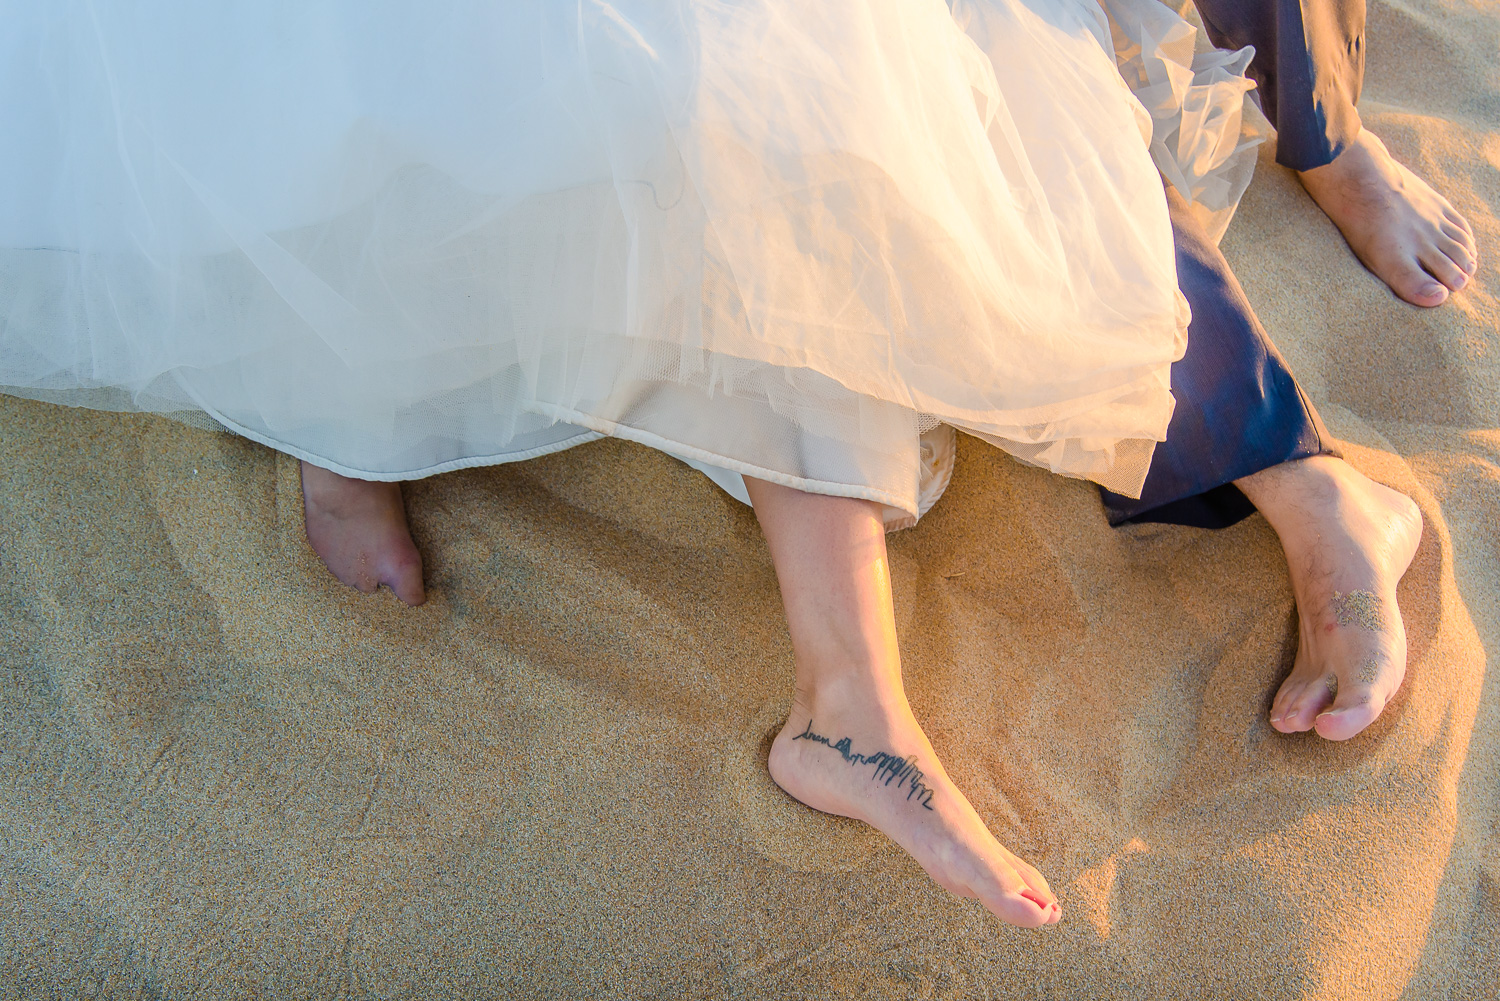 Bride and groom trash teh dress, both of them are layng down on the sand and barefoot. Bride has an interesting tatoo on her leg